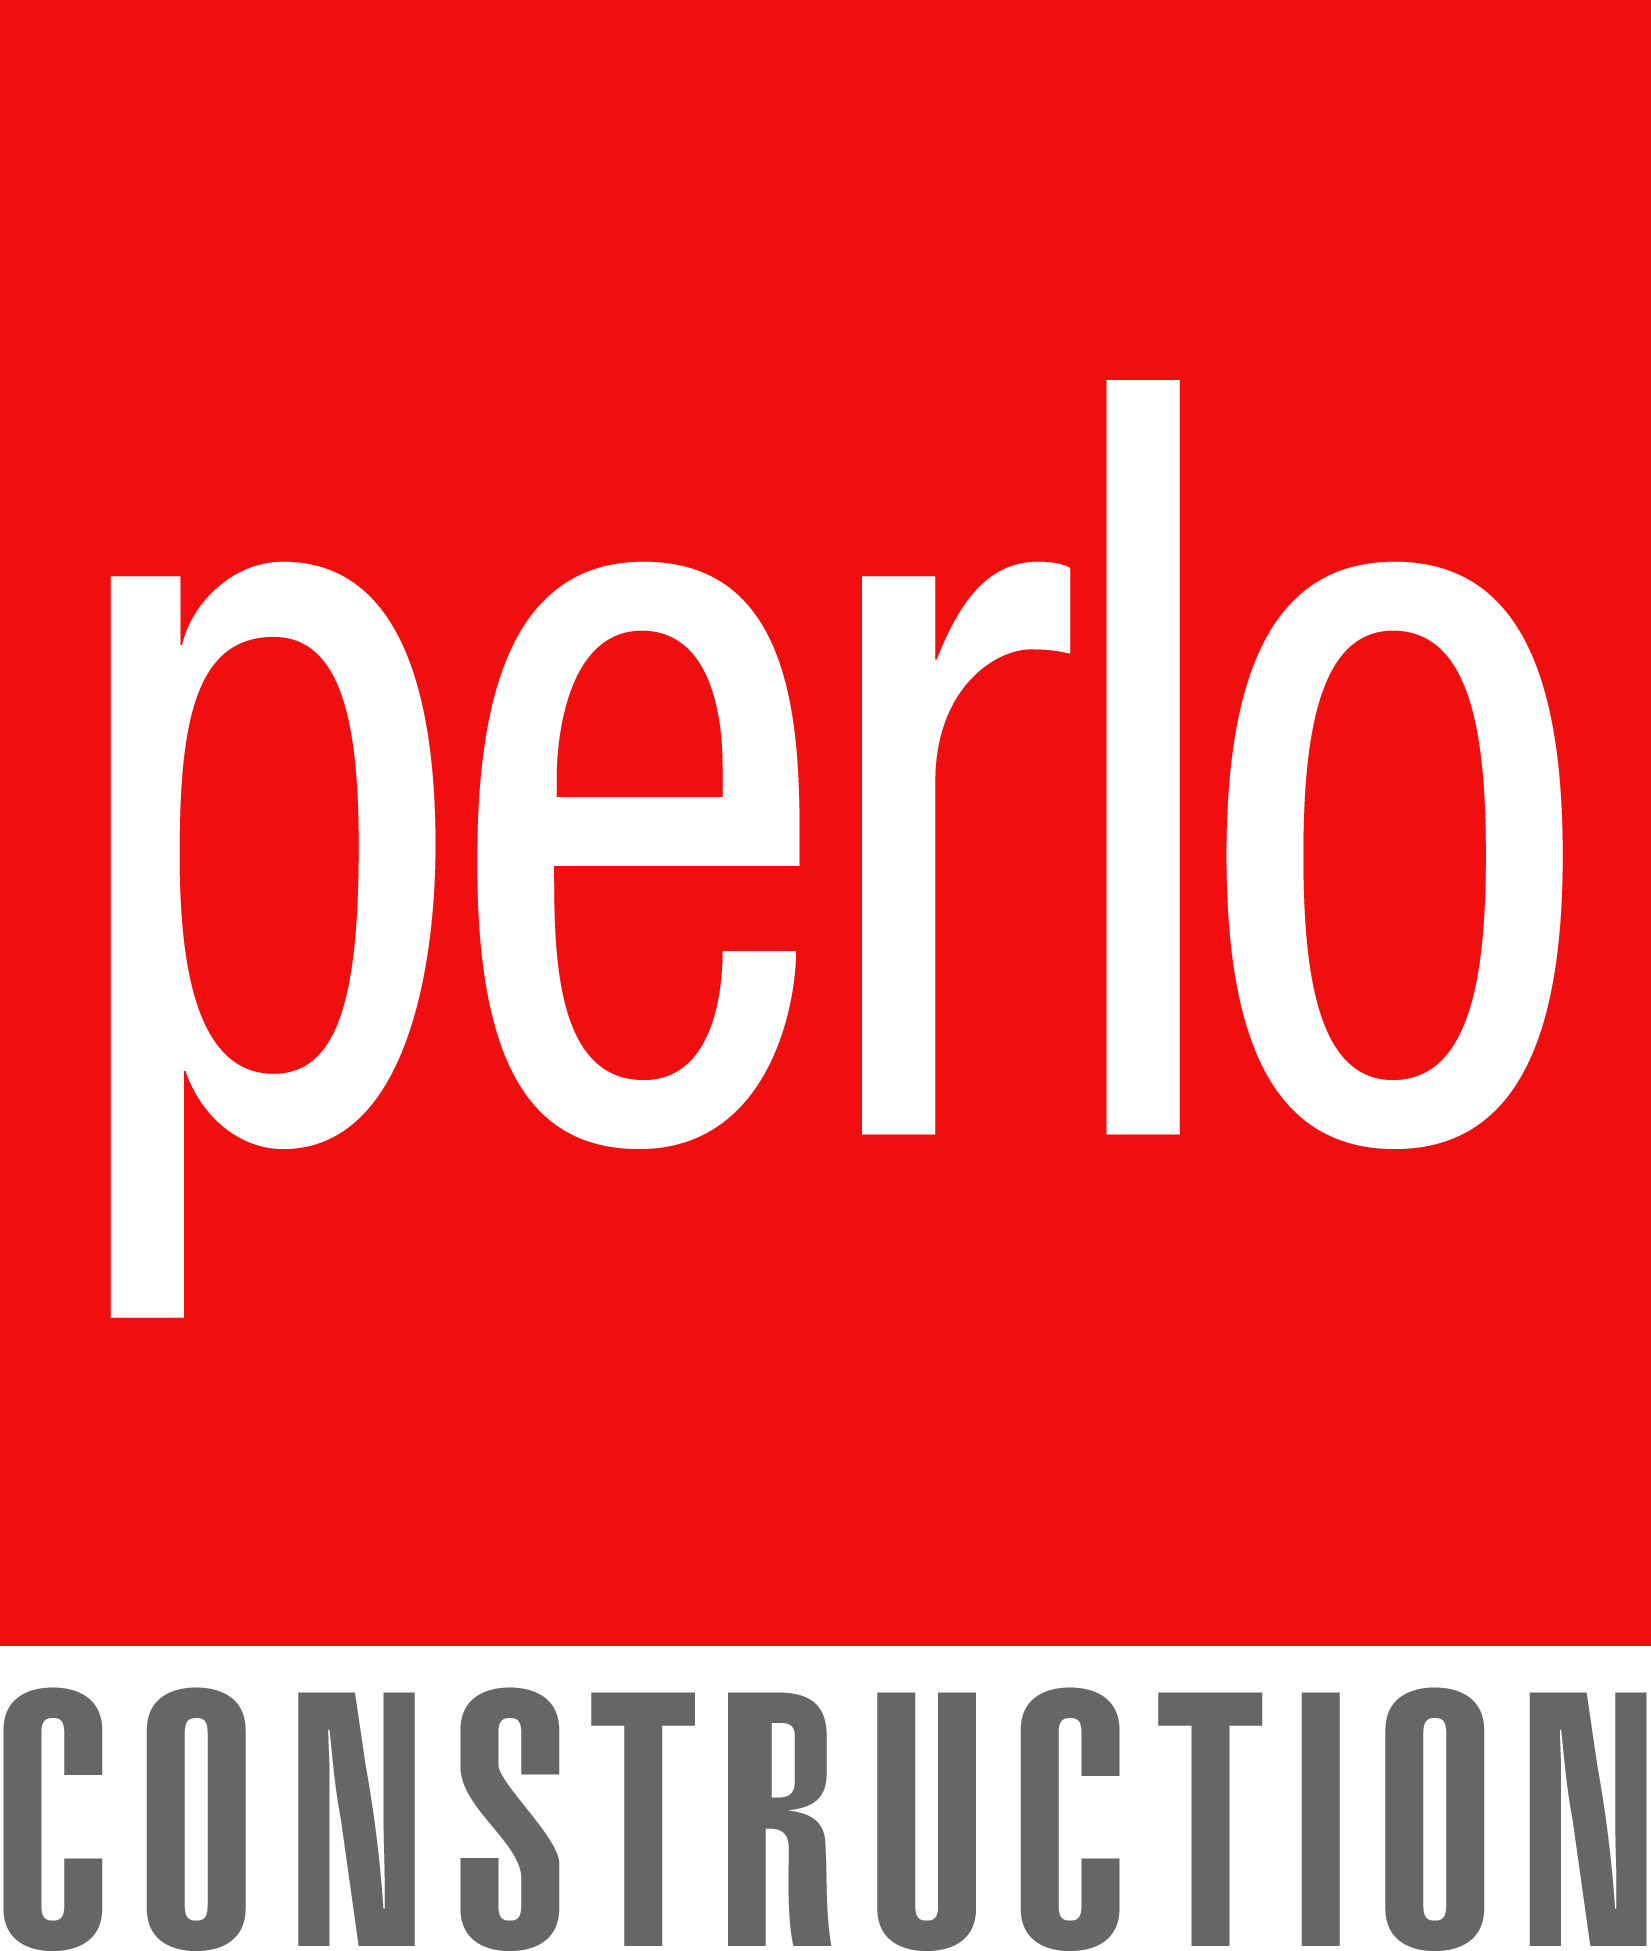 PerloConstruction